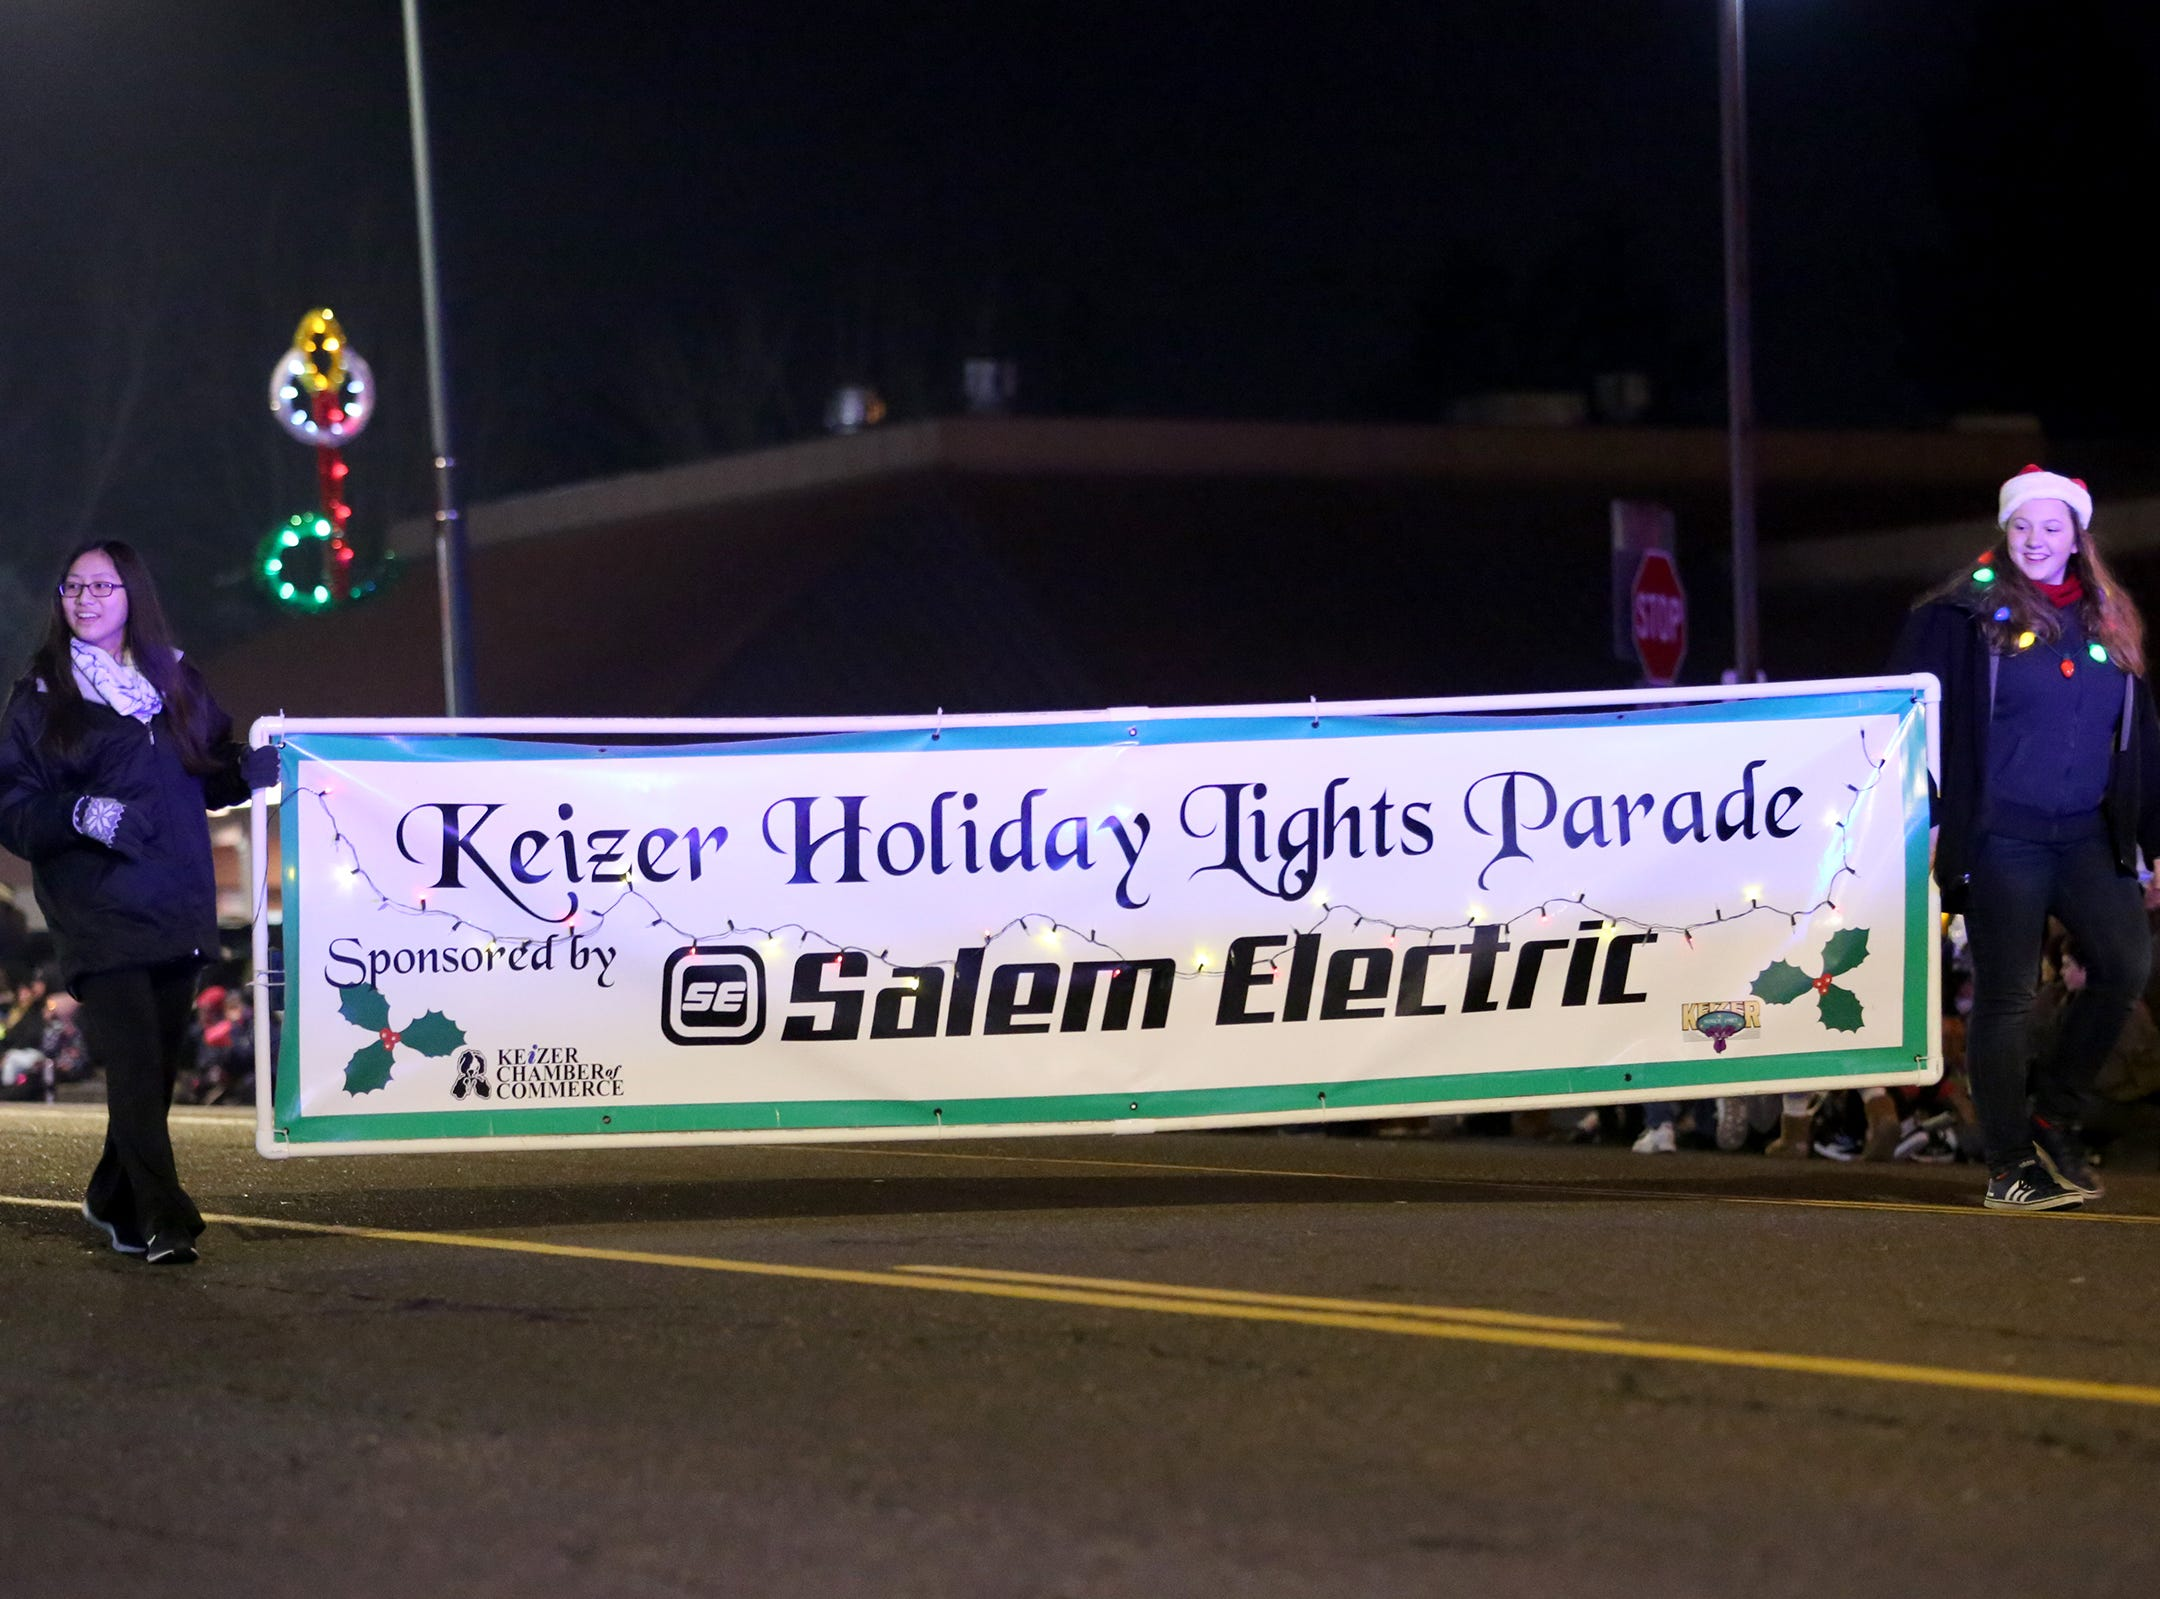 The Keizer Holiday Lights Parade returns for its third year in Keizer on Saturday, Dec. 8, 2018.